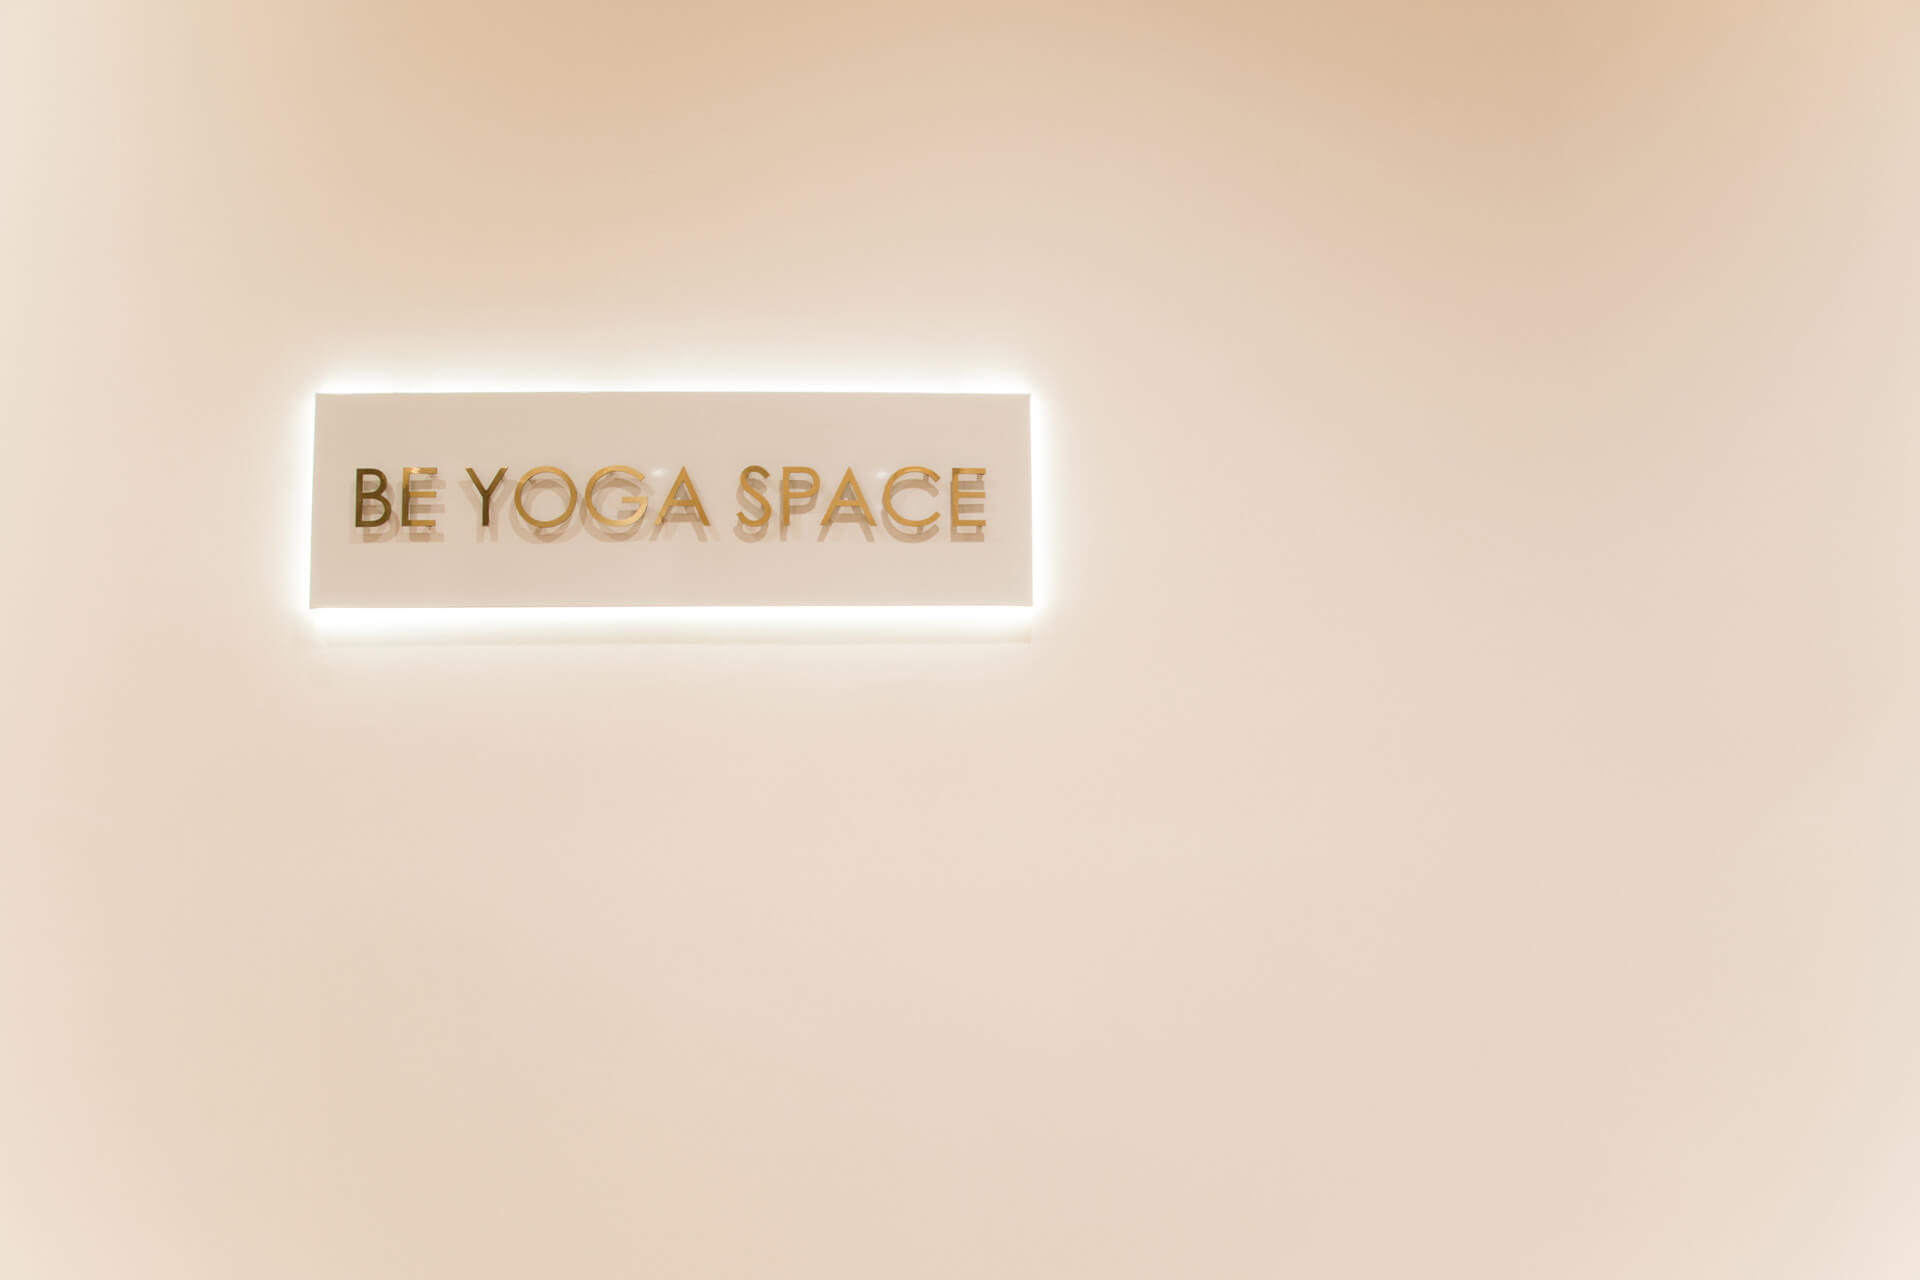 Be Yoga Space sign on white wall